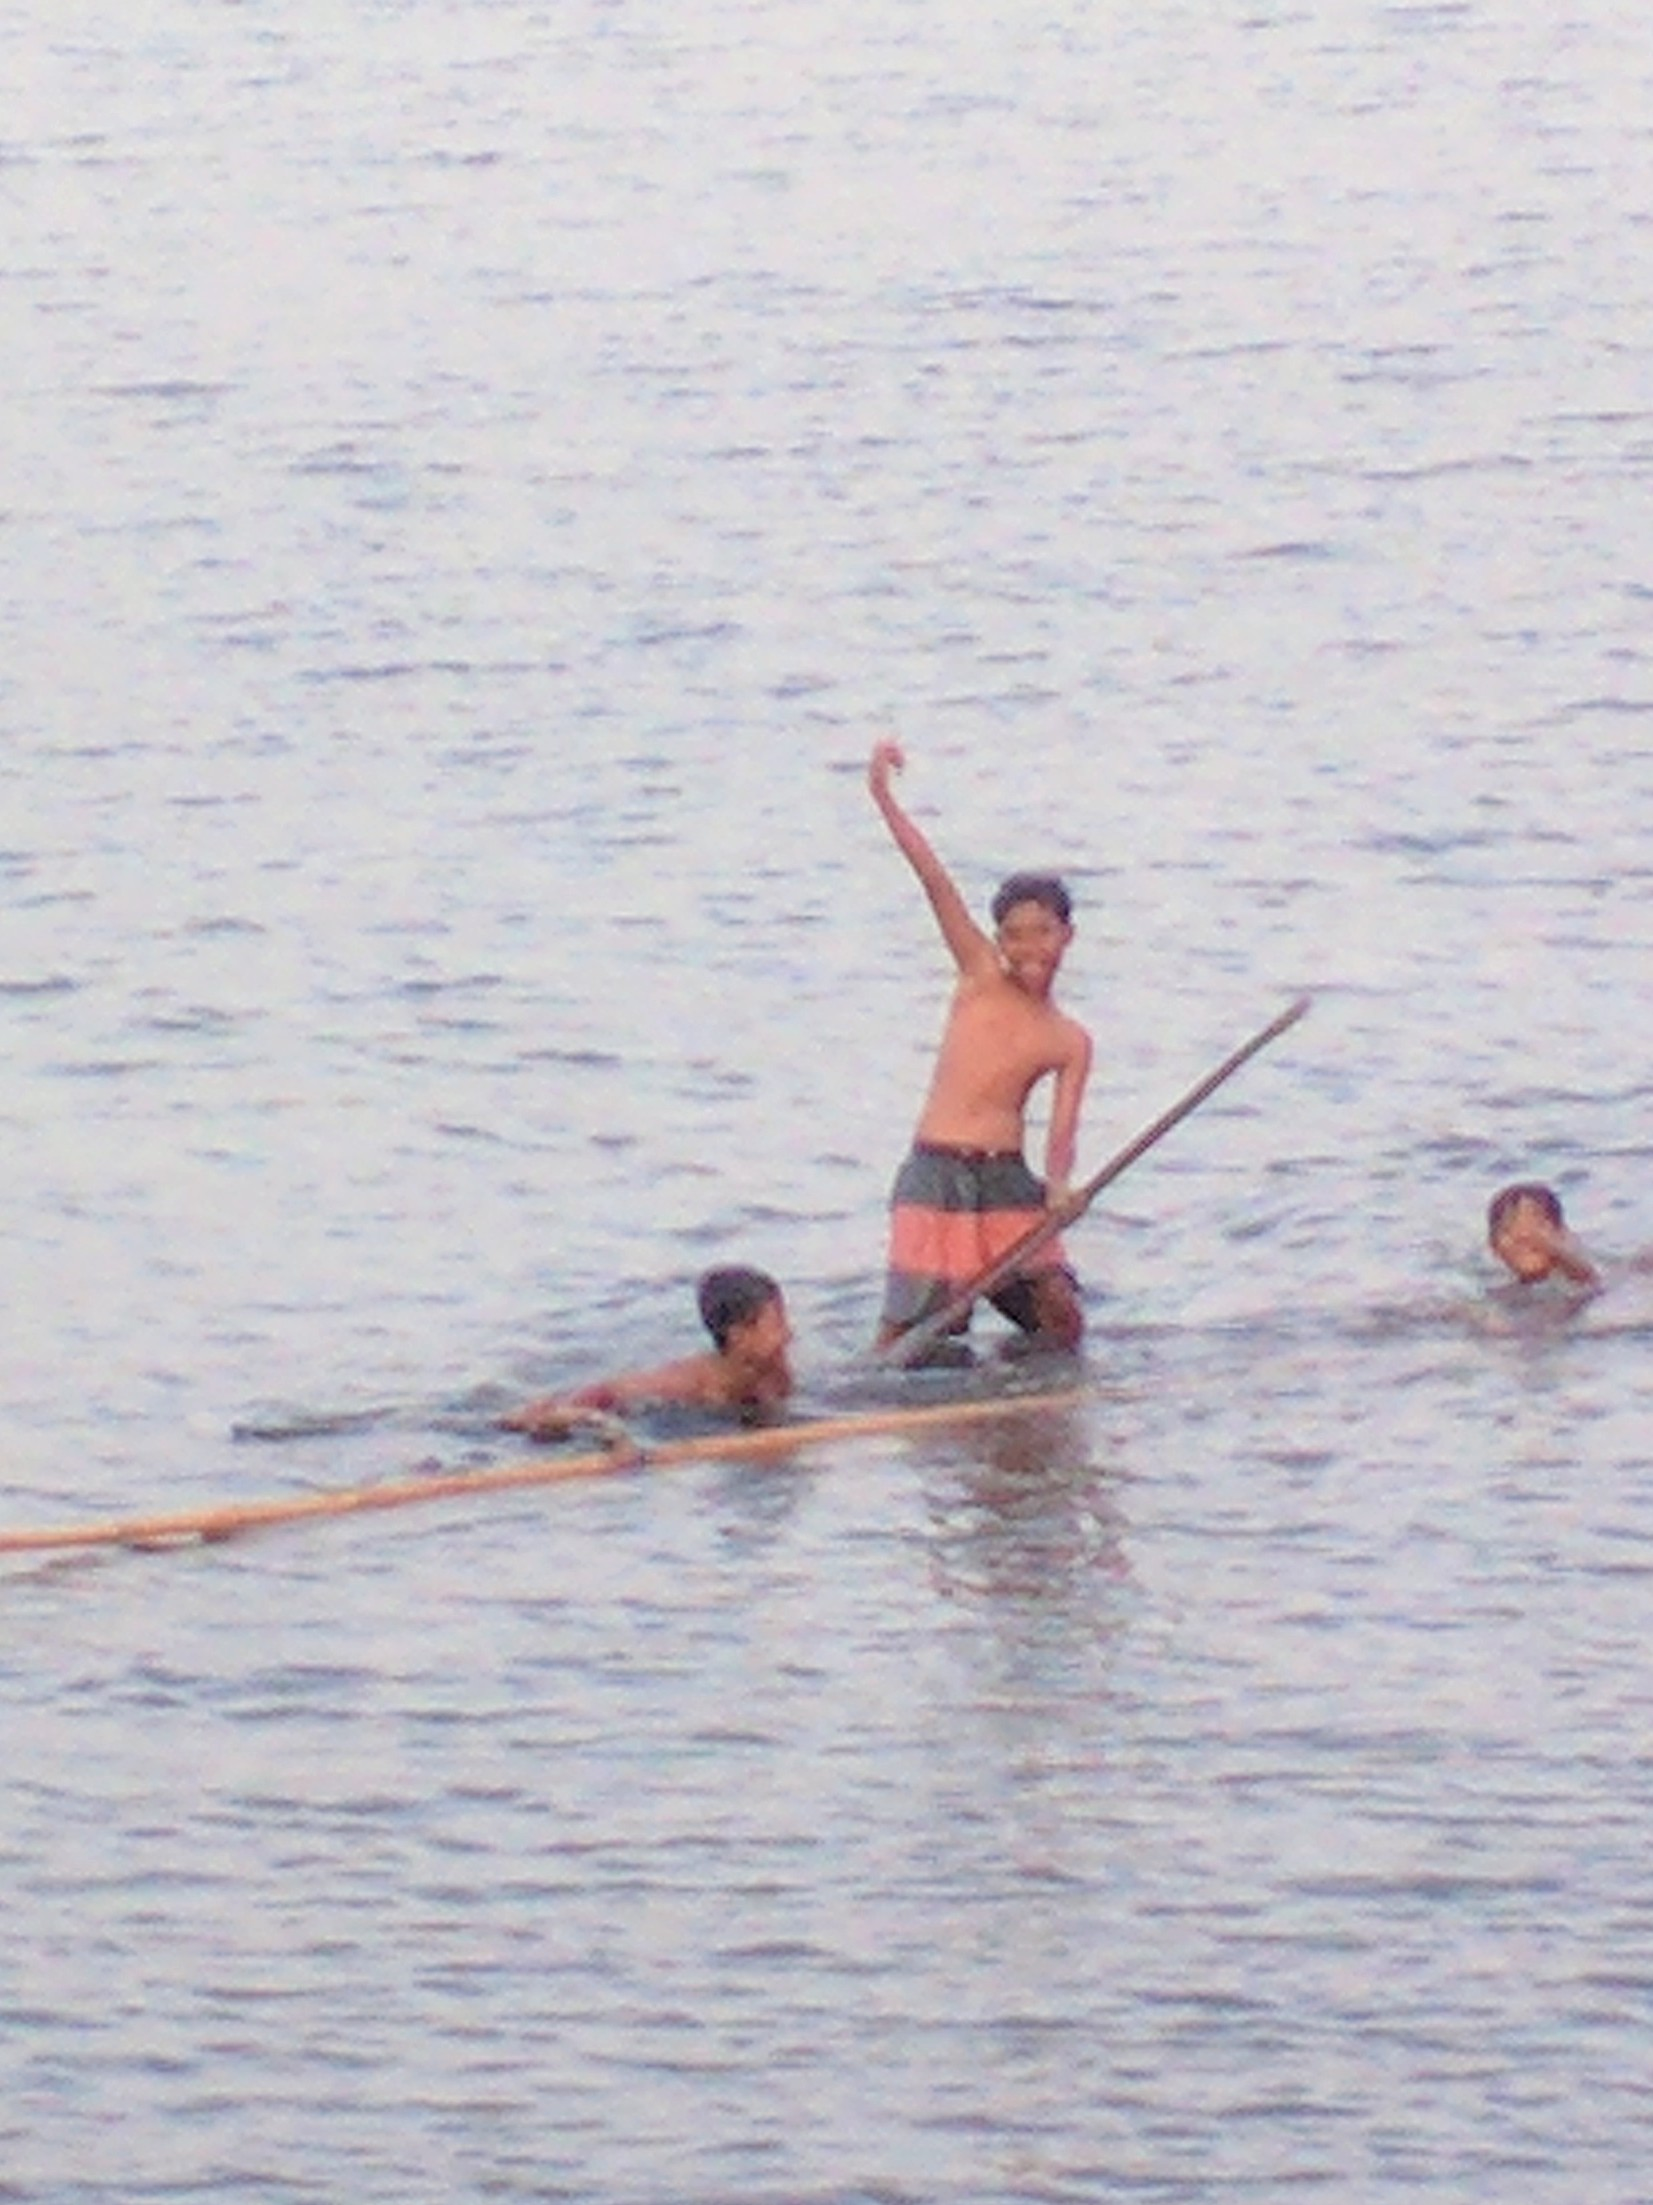 Boys in canoes hamming it up for the camera